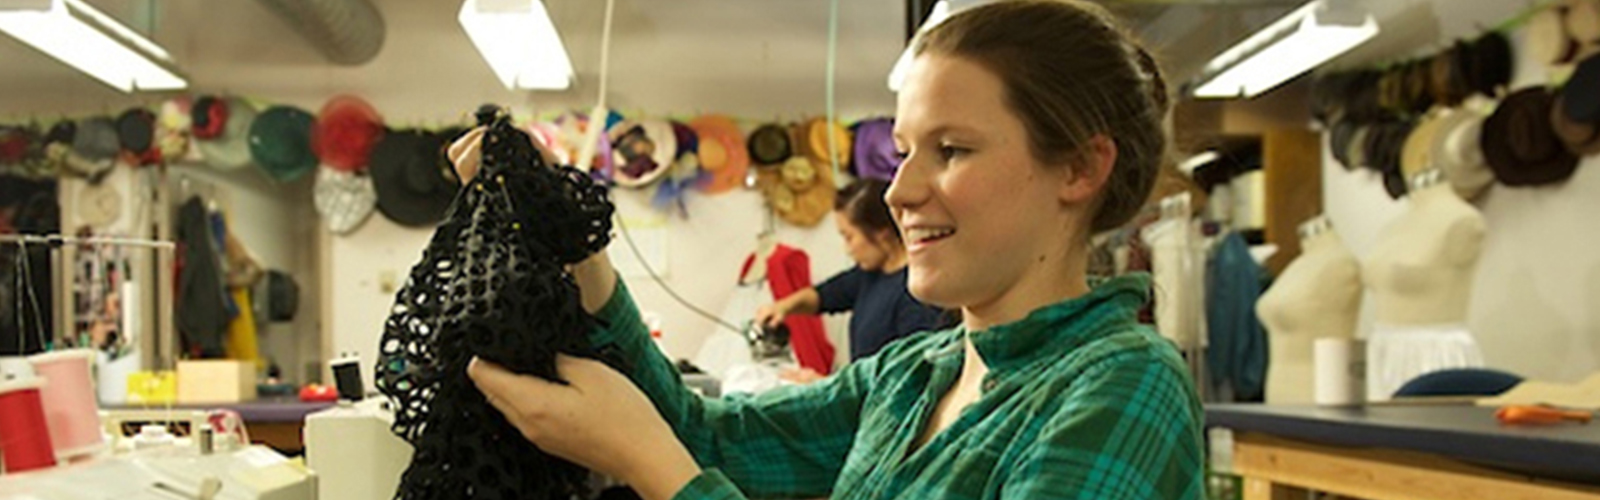 Why choose Creighton University College of Arts and Sciences?